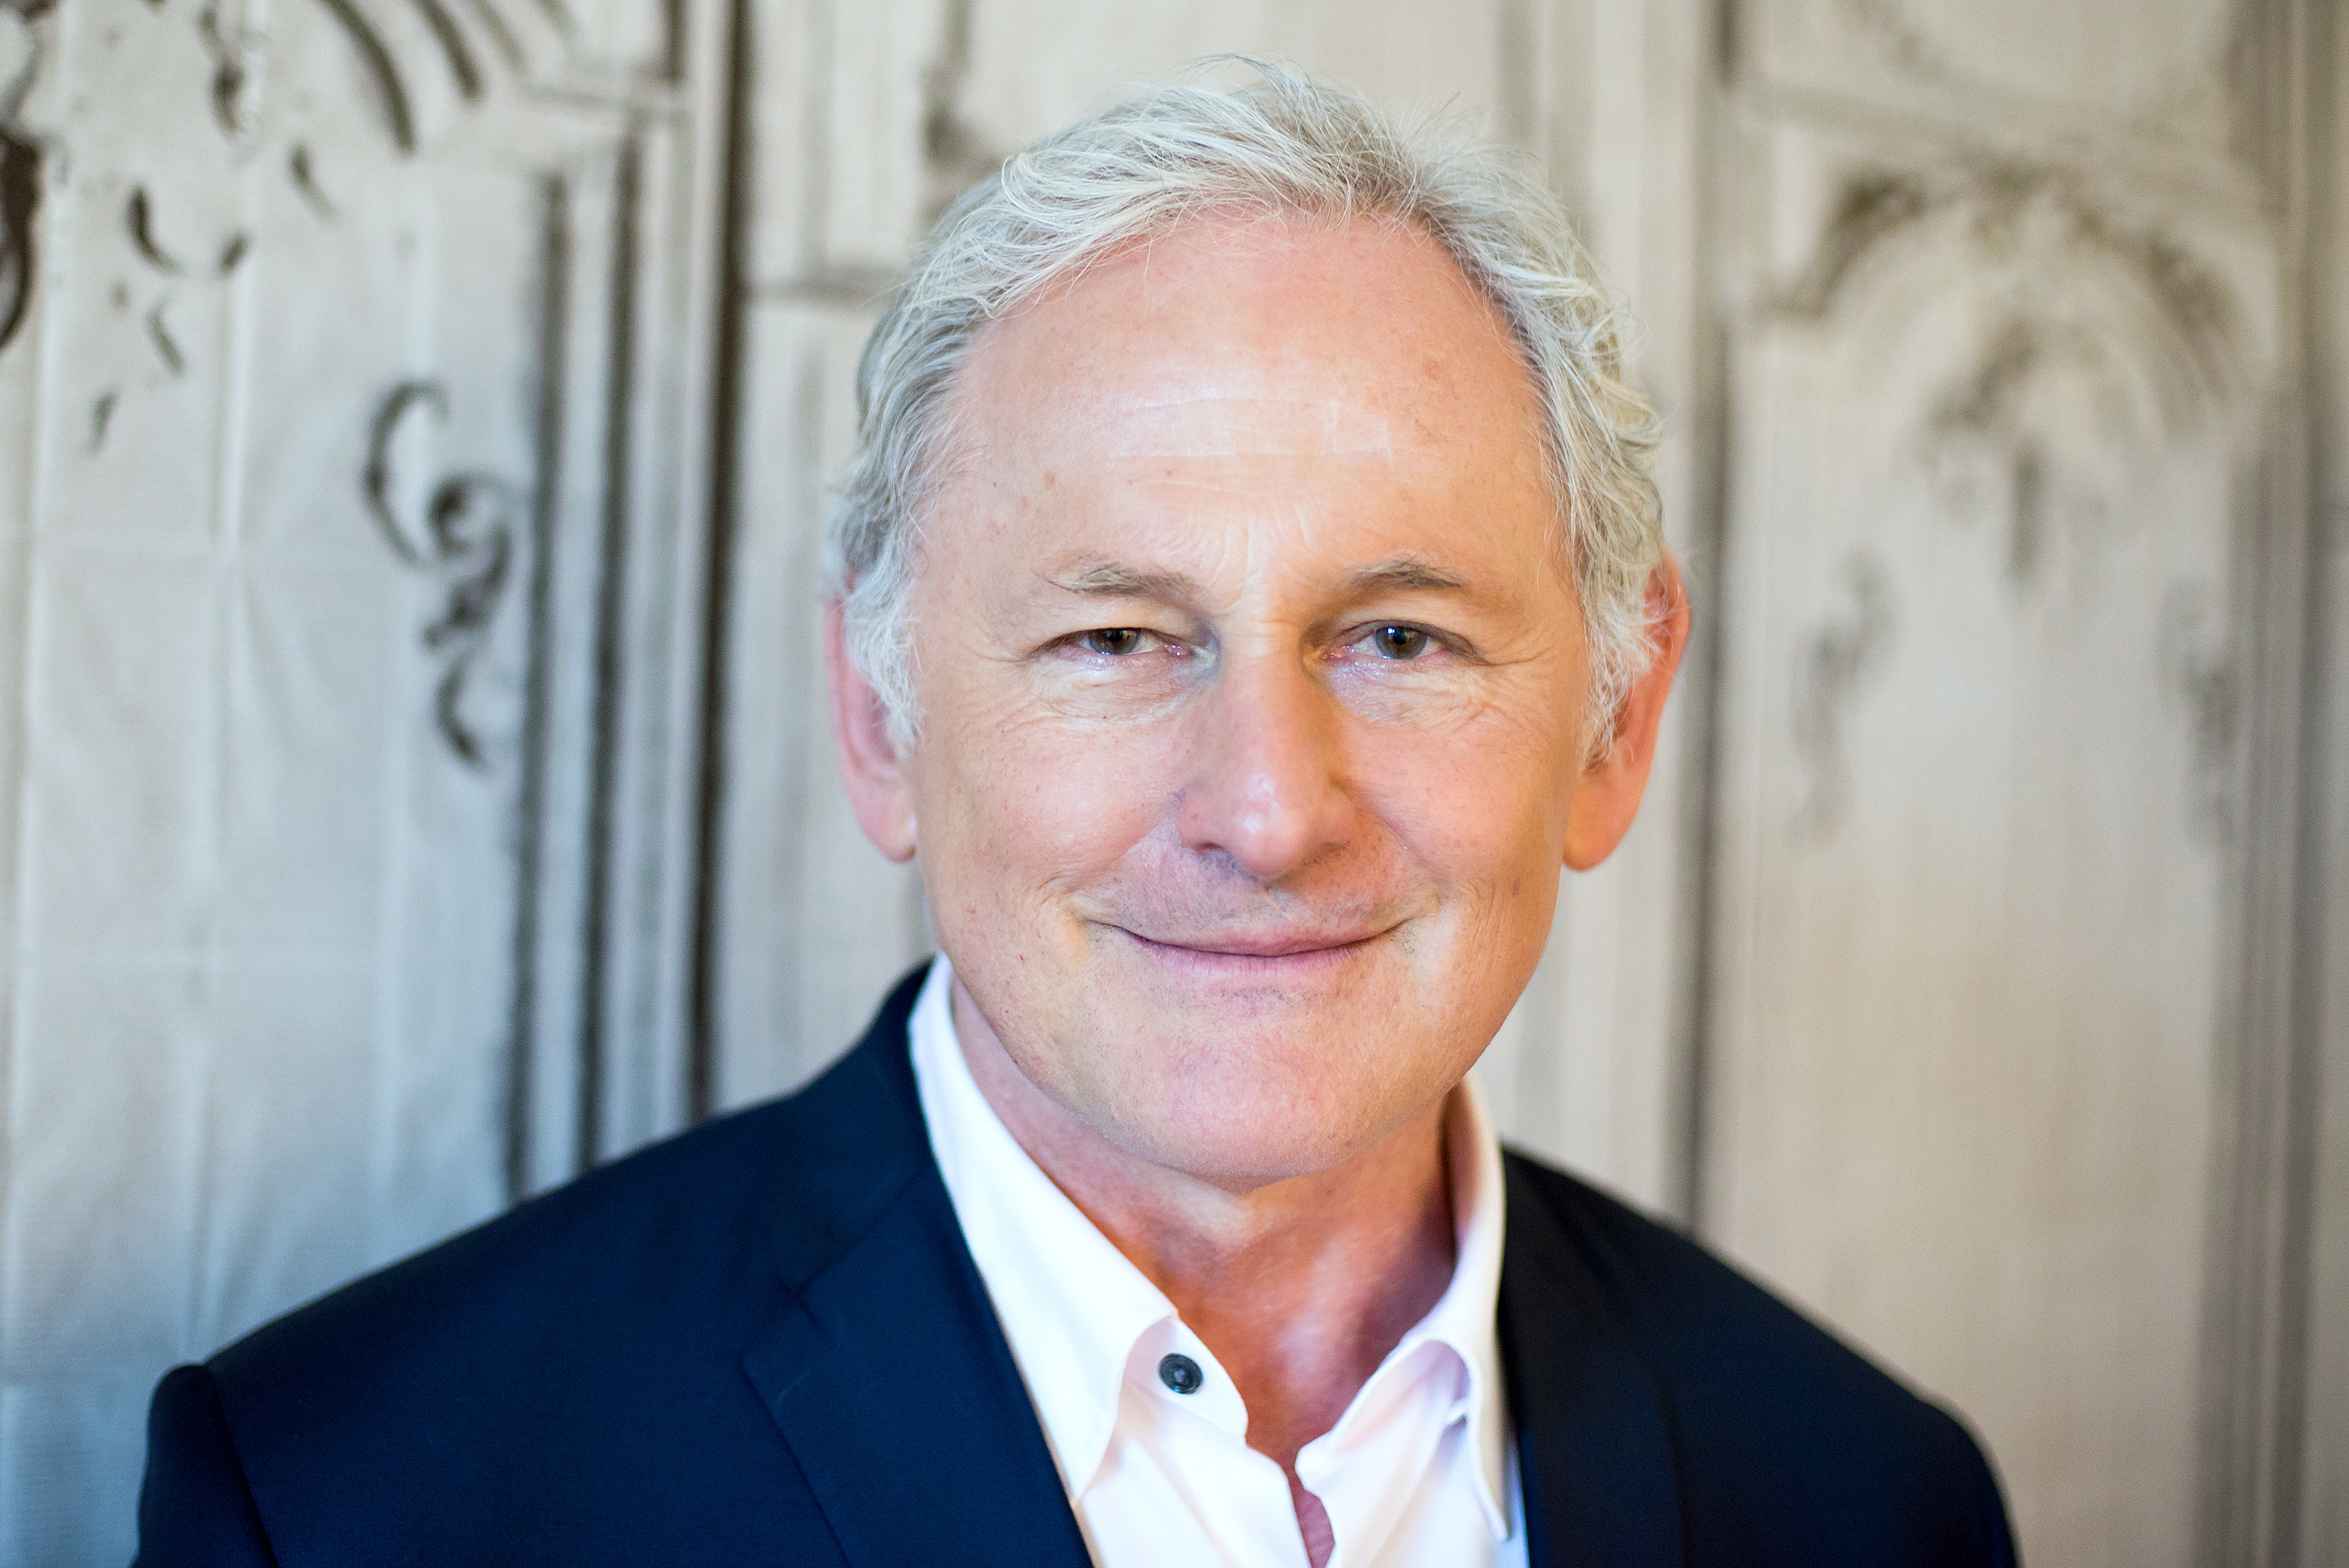 Actor Victor Garber attends the AOL Build Speaker Series at AOL Studios In New York on June 22, 2015 in New York City.